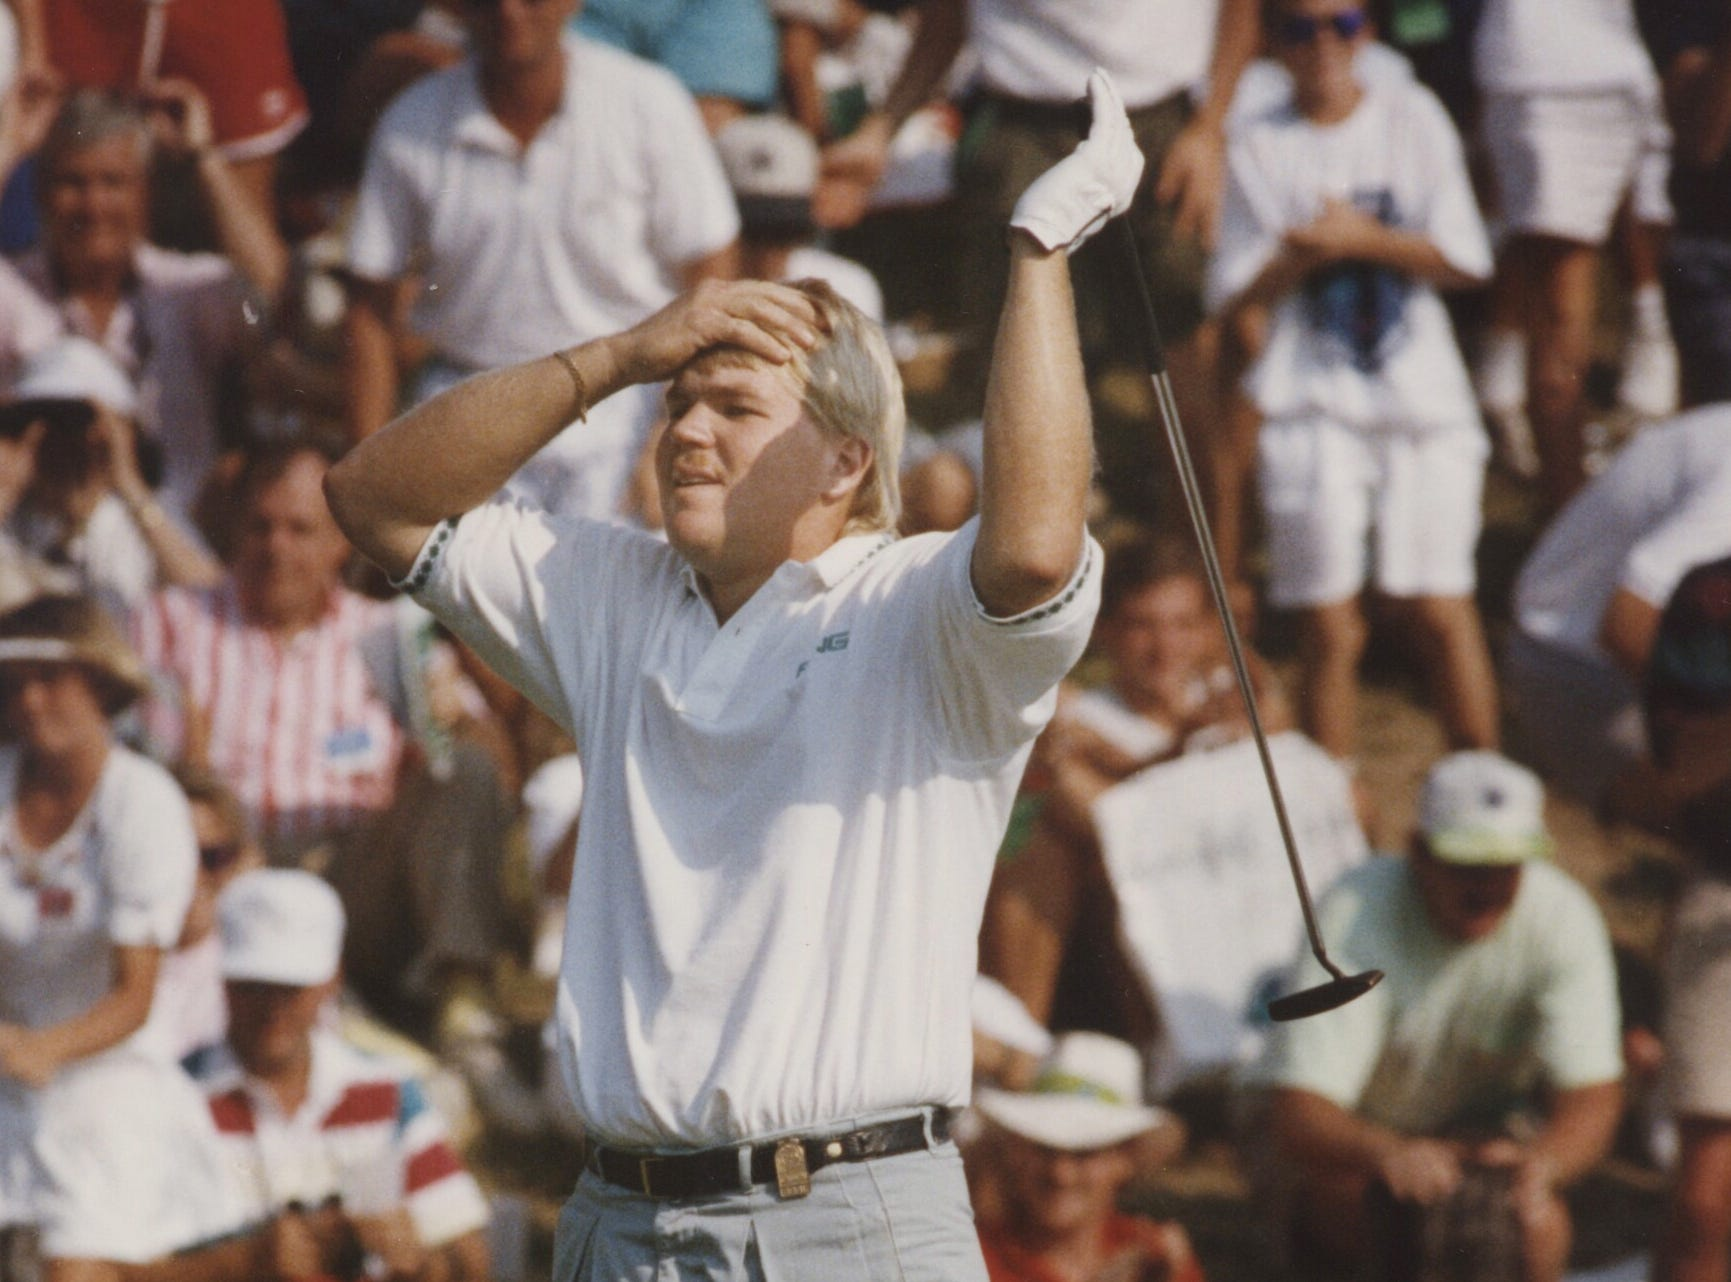 25-year-old rookie John Daly knocked in a putt on the final hole to win the PGA Championship at Crooked Stick Golf Club, August 11, 1991.